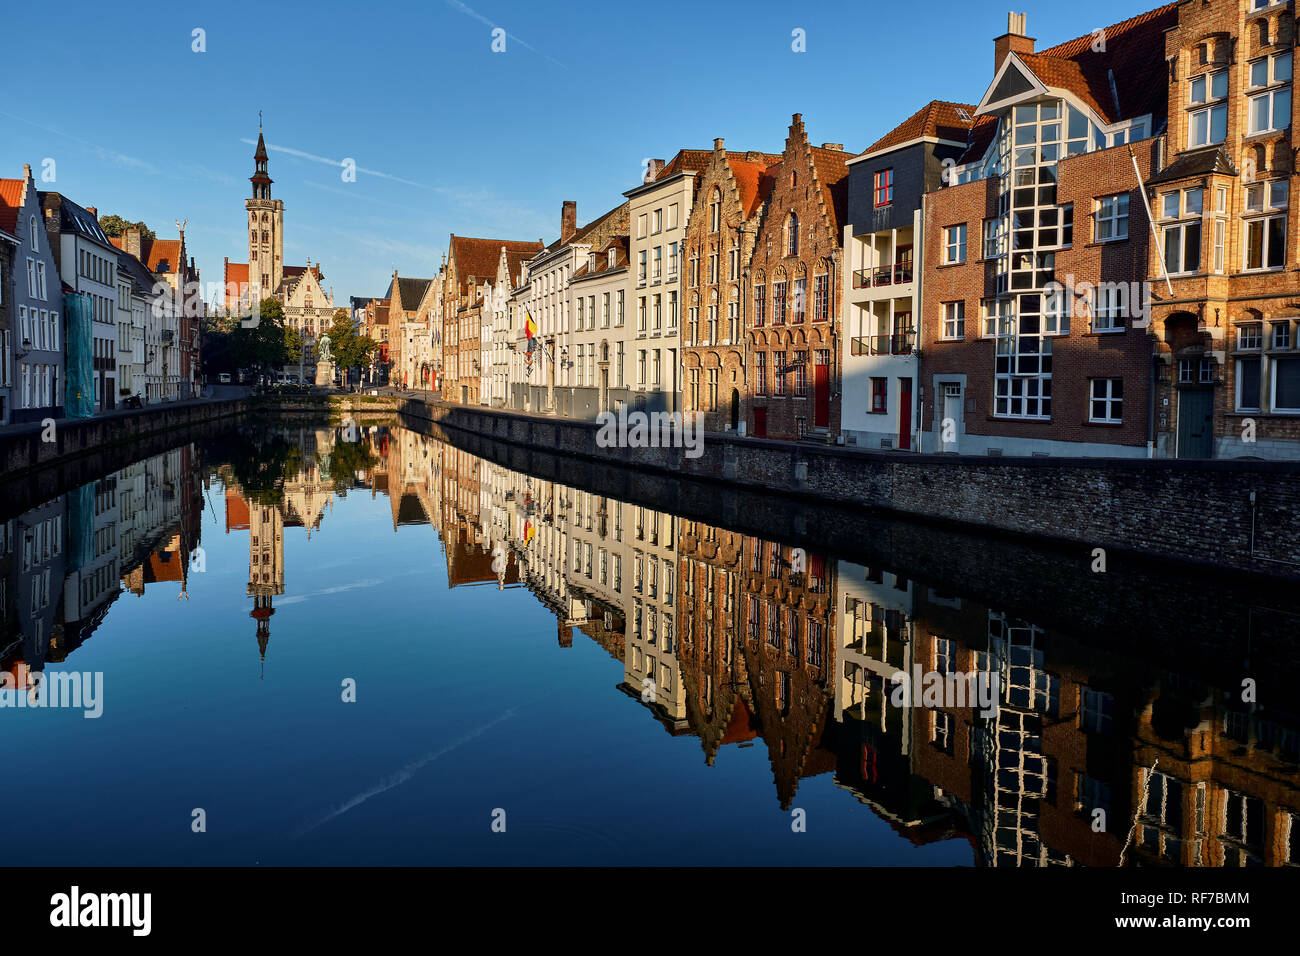 Pictured is the canal at Jan Van Eyck Square Bruges, Belgium - Stock Image